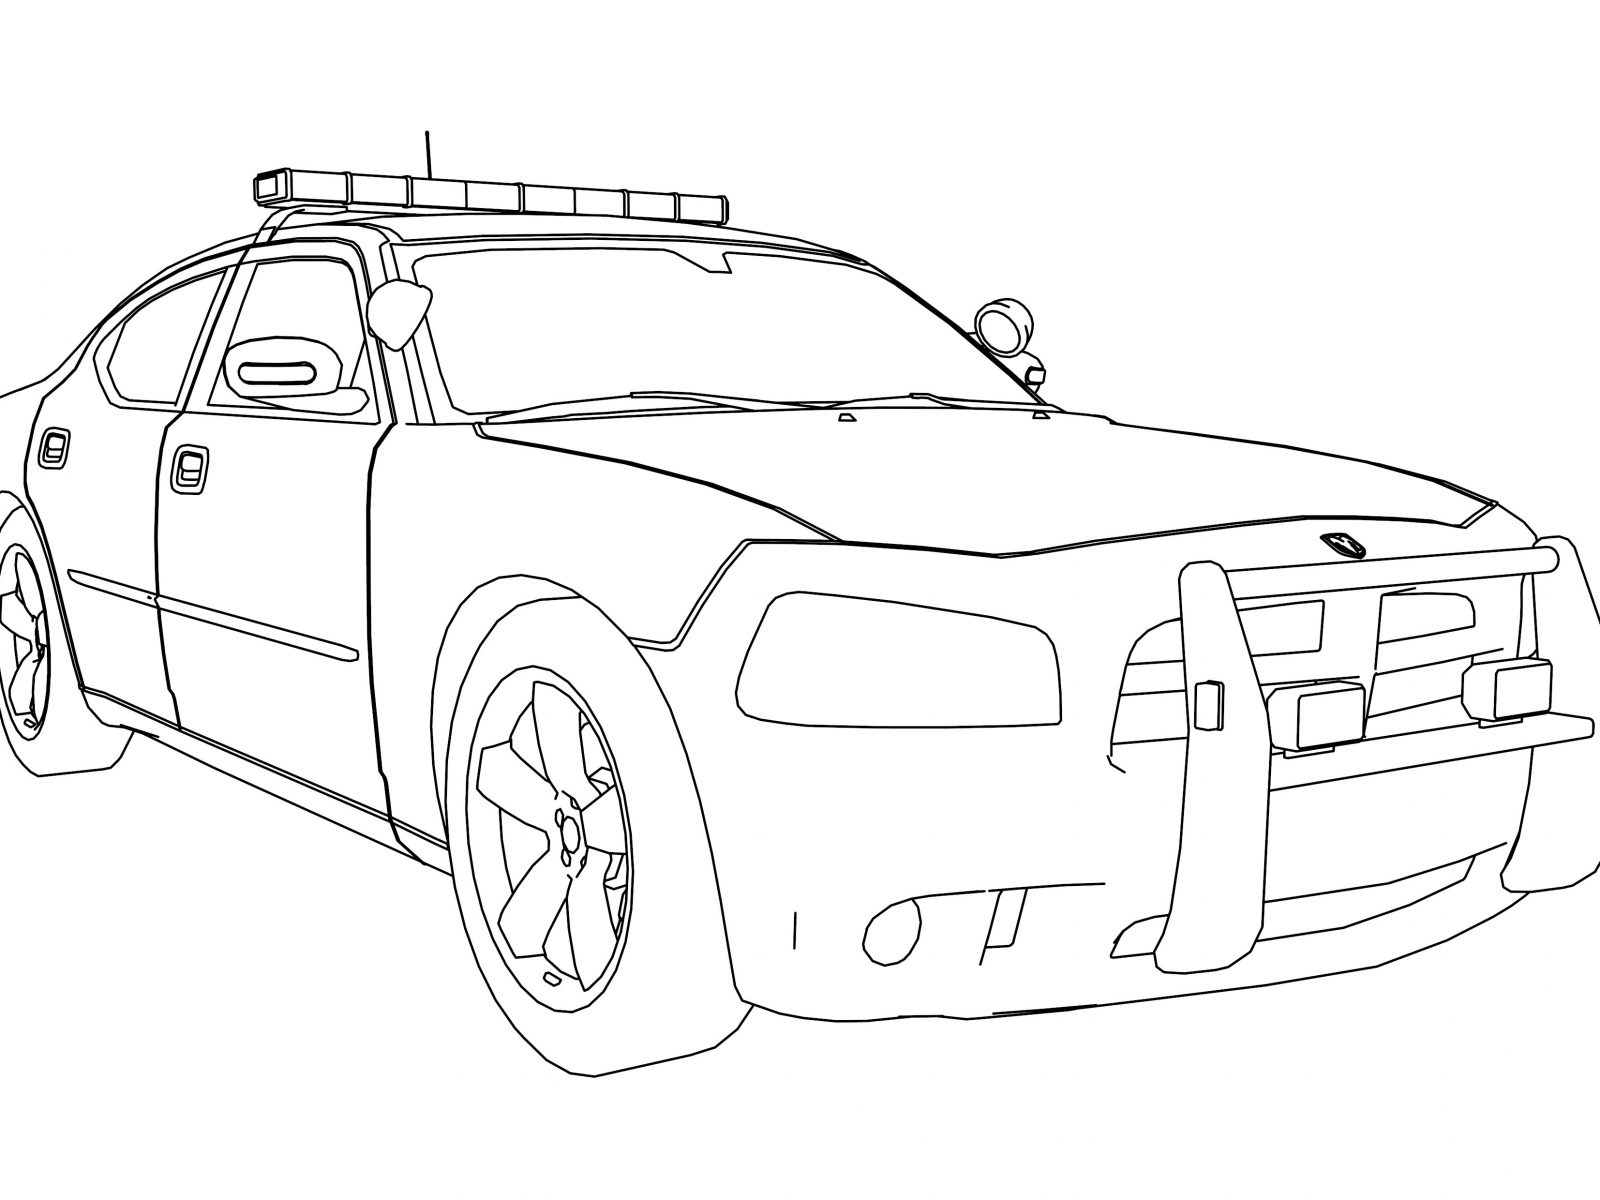 Suv Coloring Pages At Getcolorings